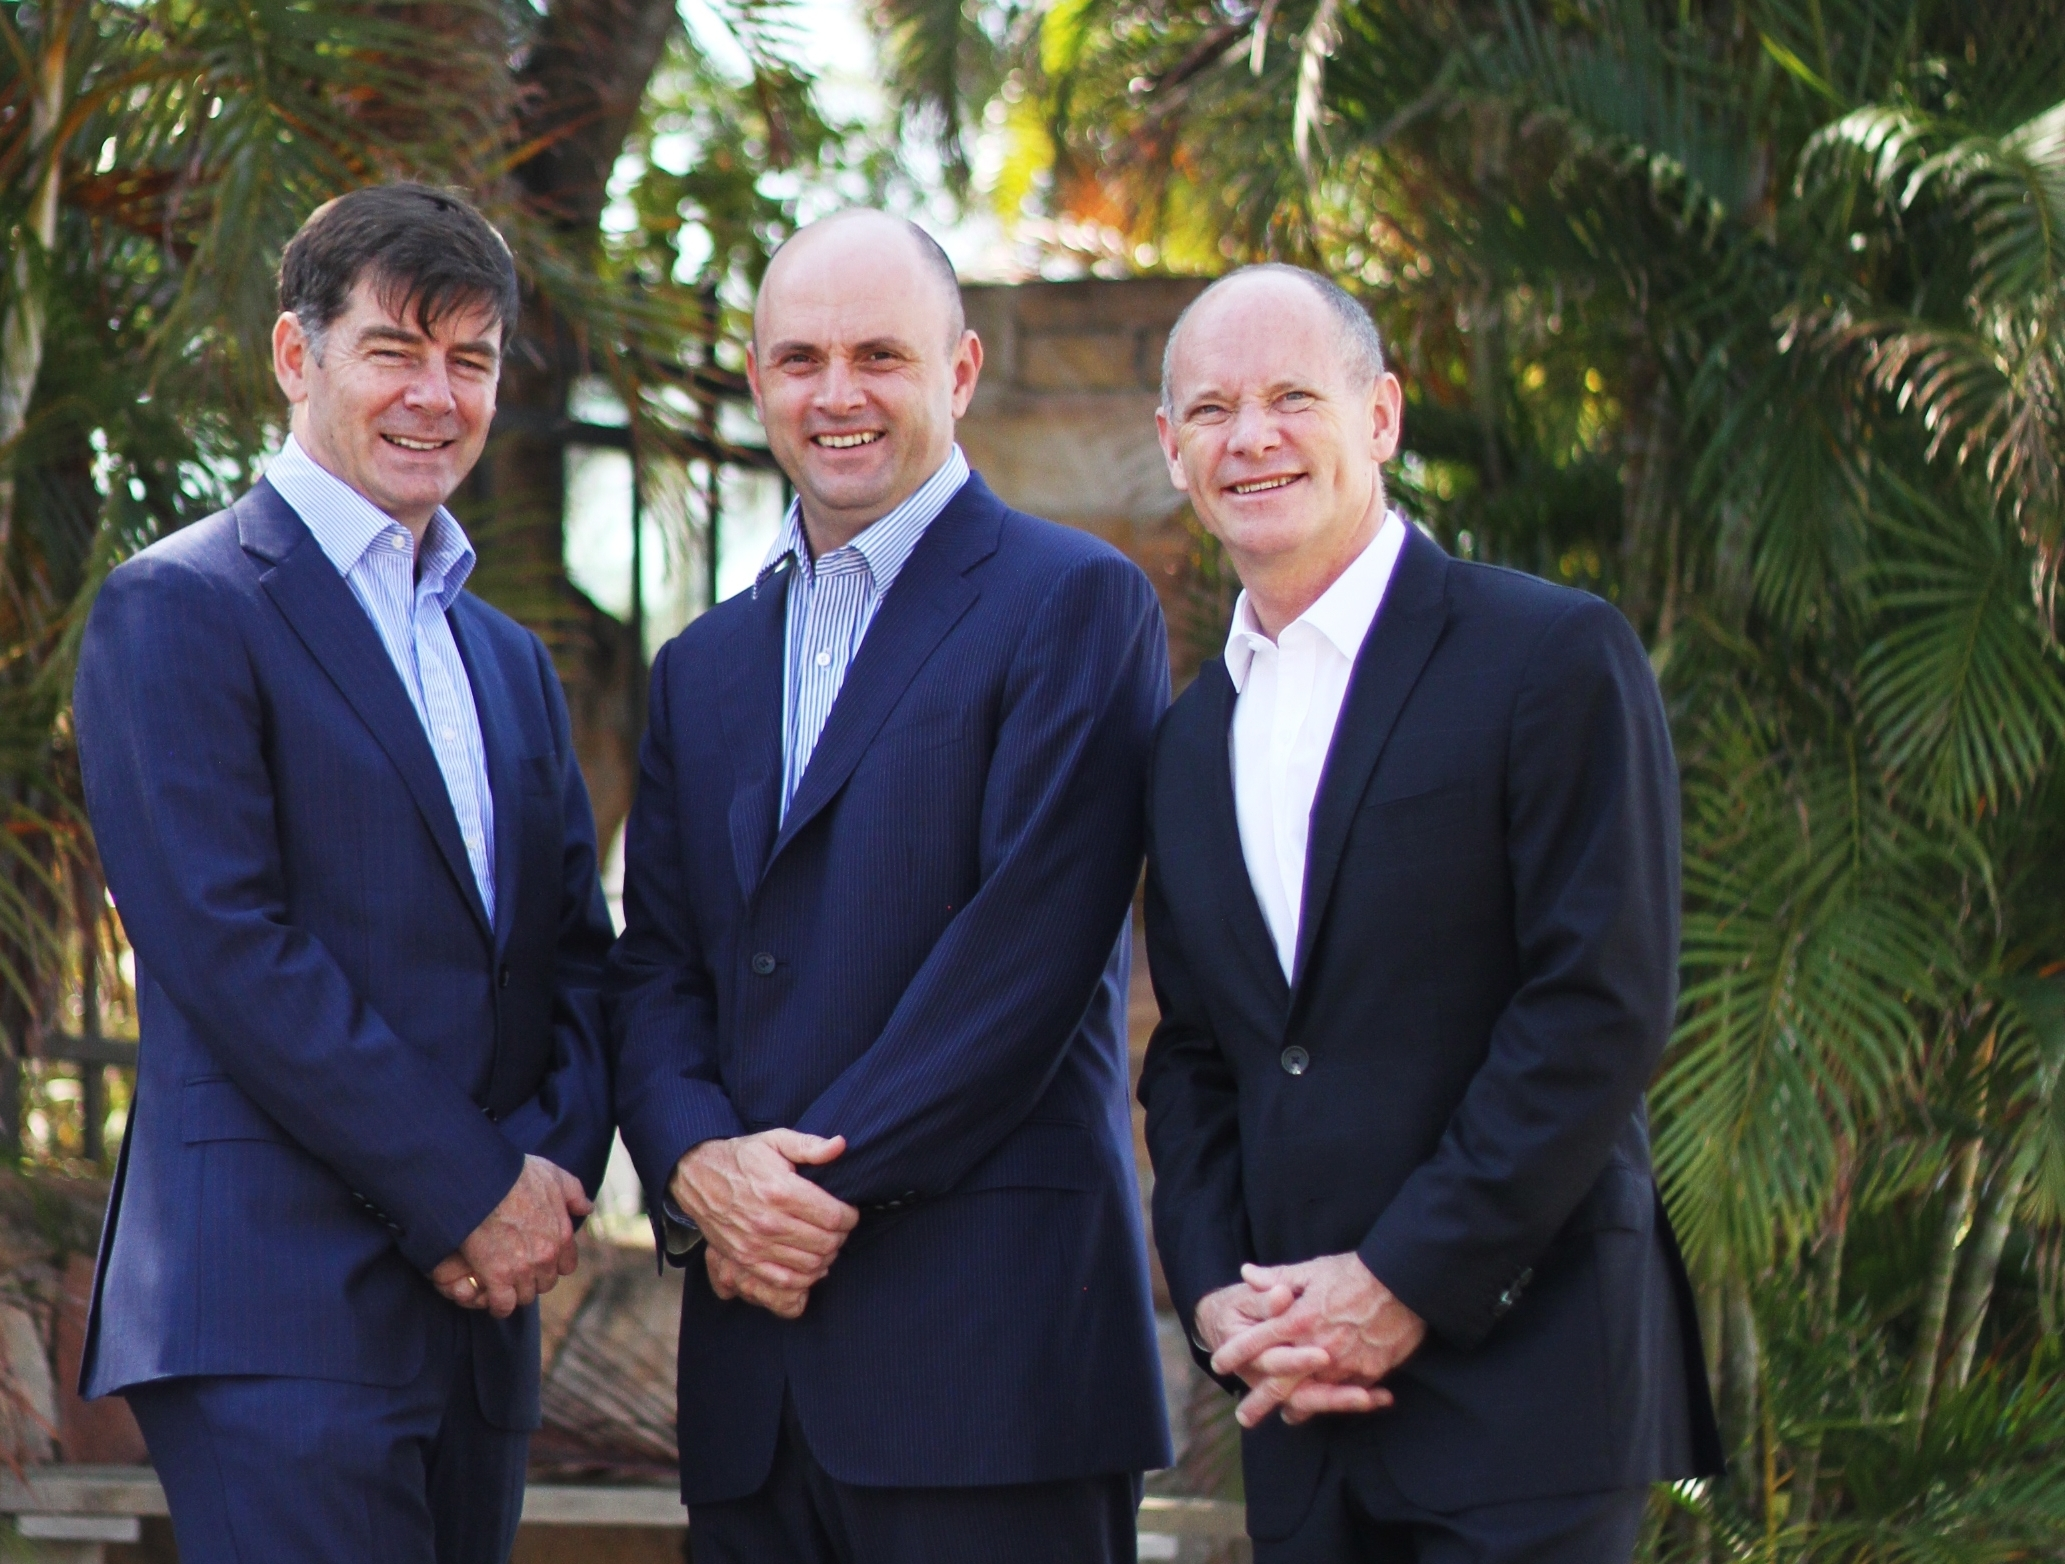 Why choose us? - Arcana Capital facilitates positive and beneficial investment by wholesale investors in Australian commercial real estate in an open and transparent manner.As of September 2019 Arcana Capital has been involved in the acquisition and management of 13 commercial properties representing a total asset value of $109.85 million.Learn More